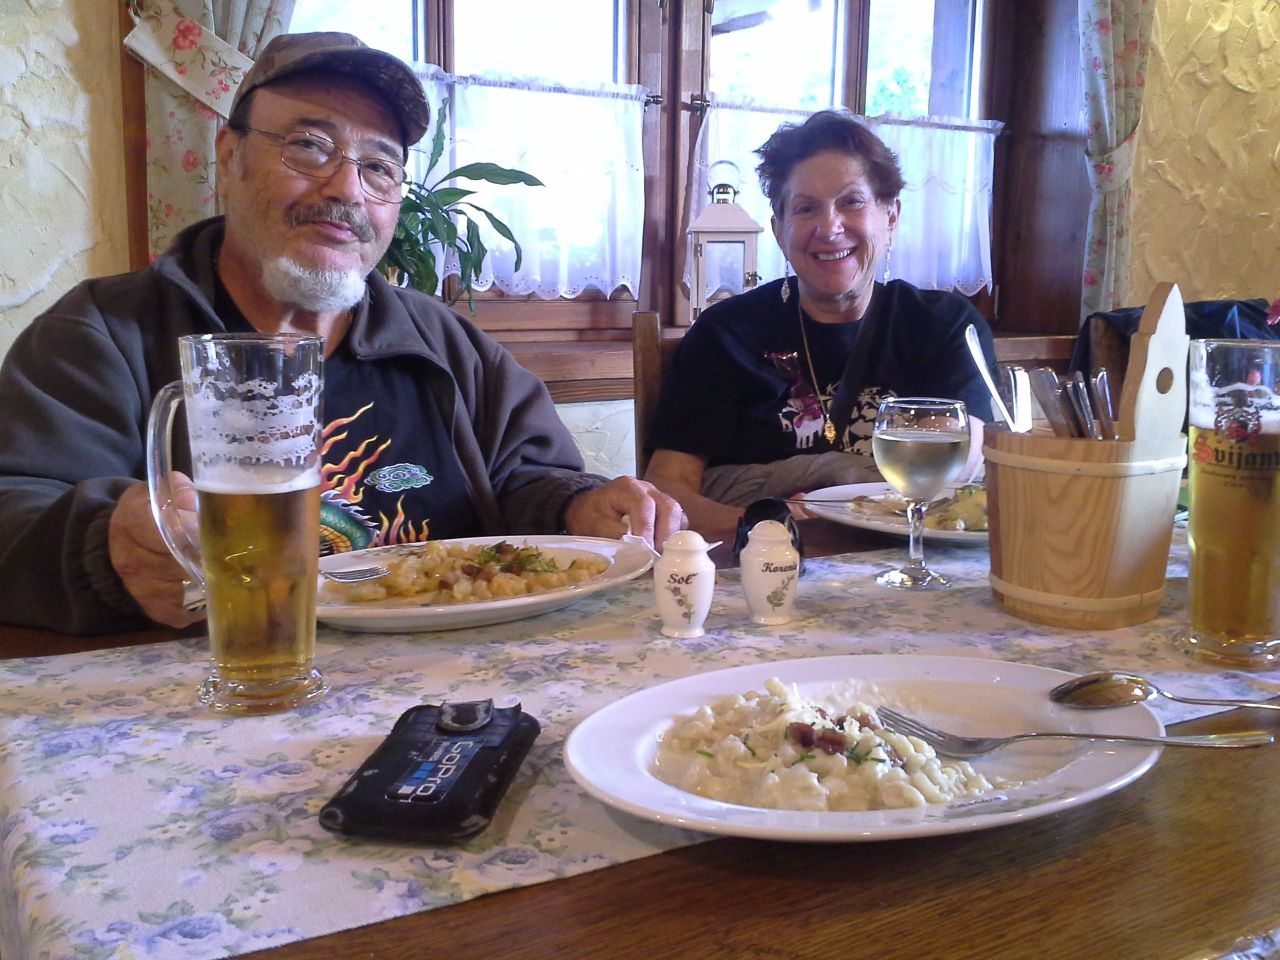 Traditional slovak cuisine, slovak meals, slovak recipies, food from slovakia, slovakia roots tour, private ancestry tour, family tree tours